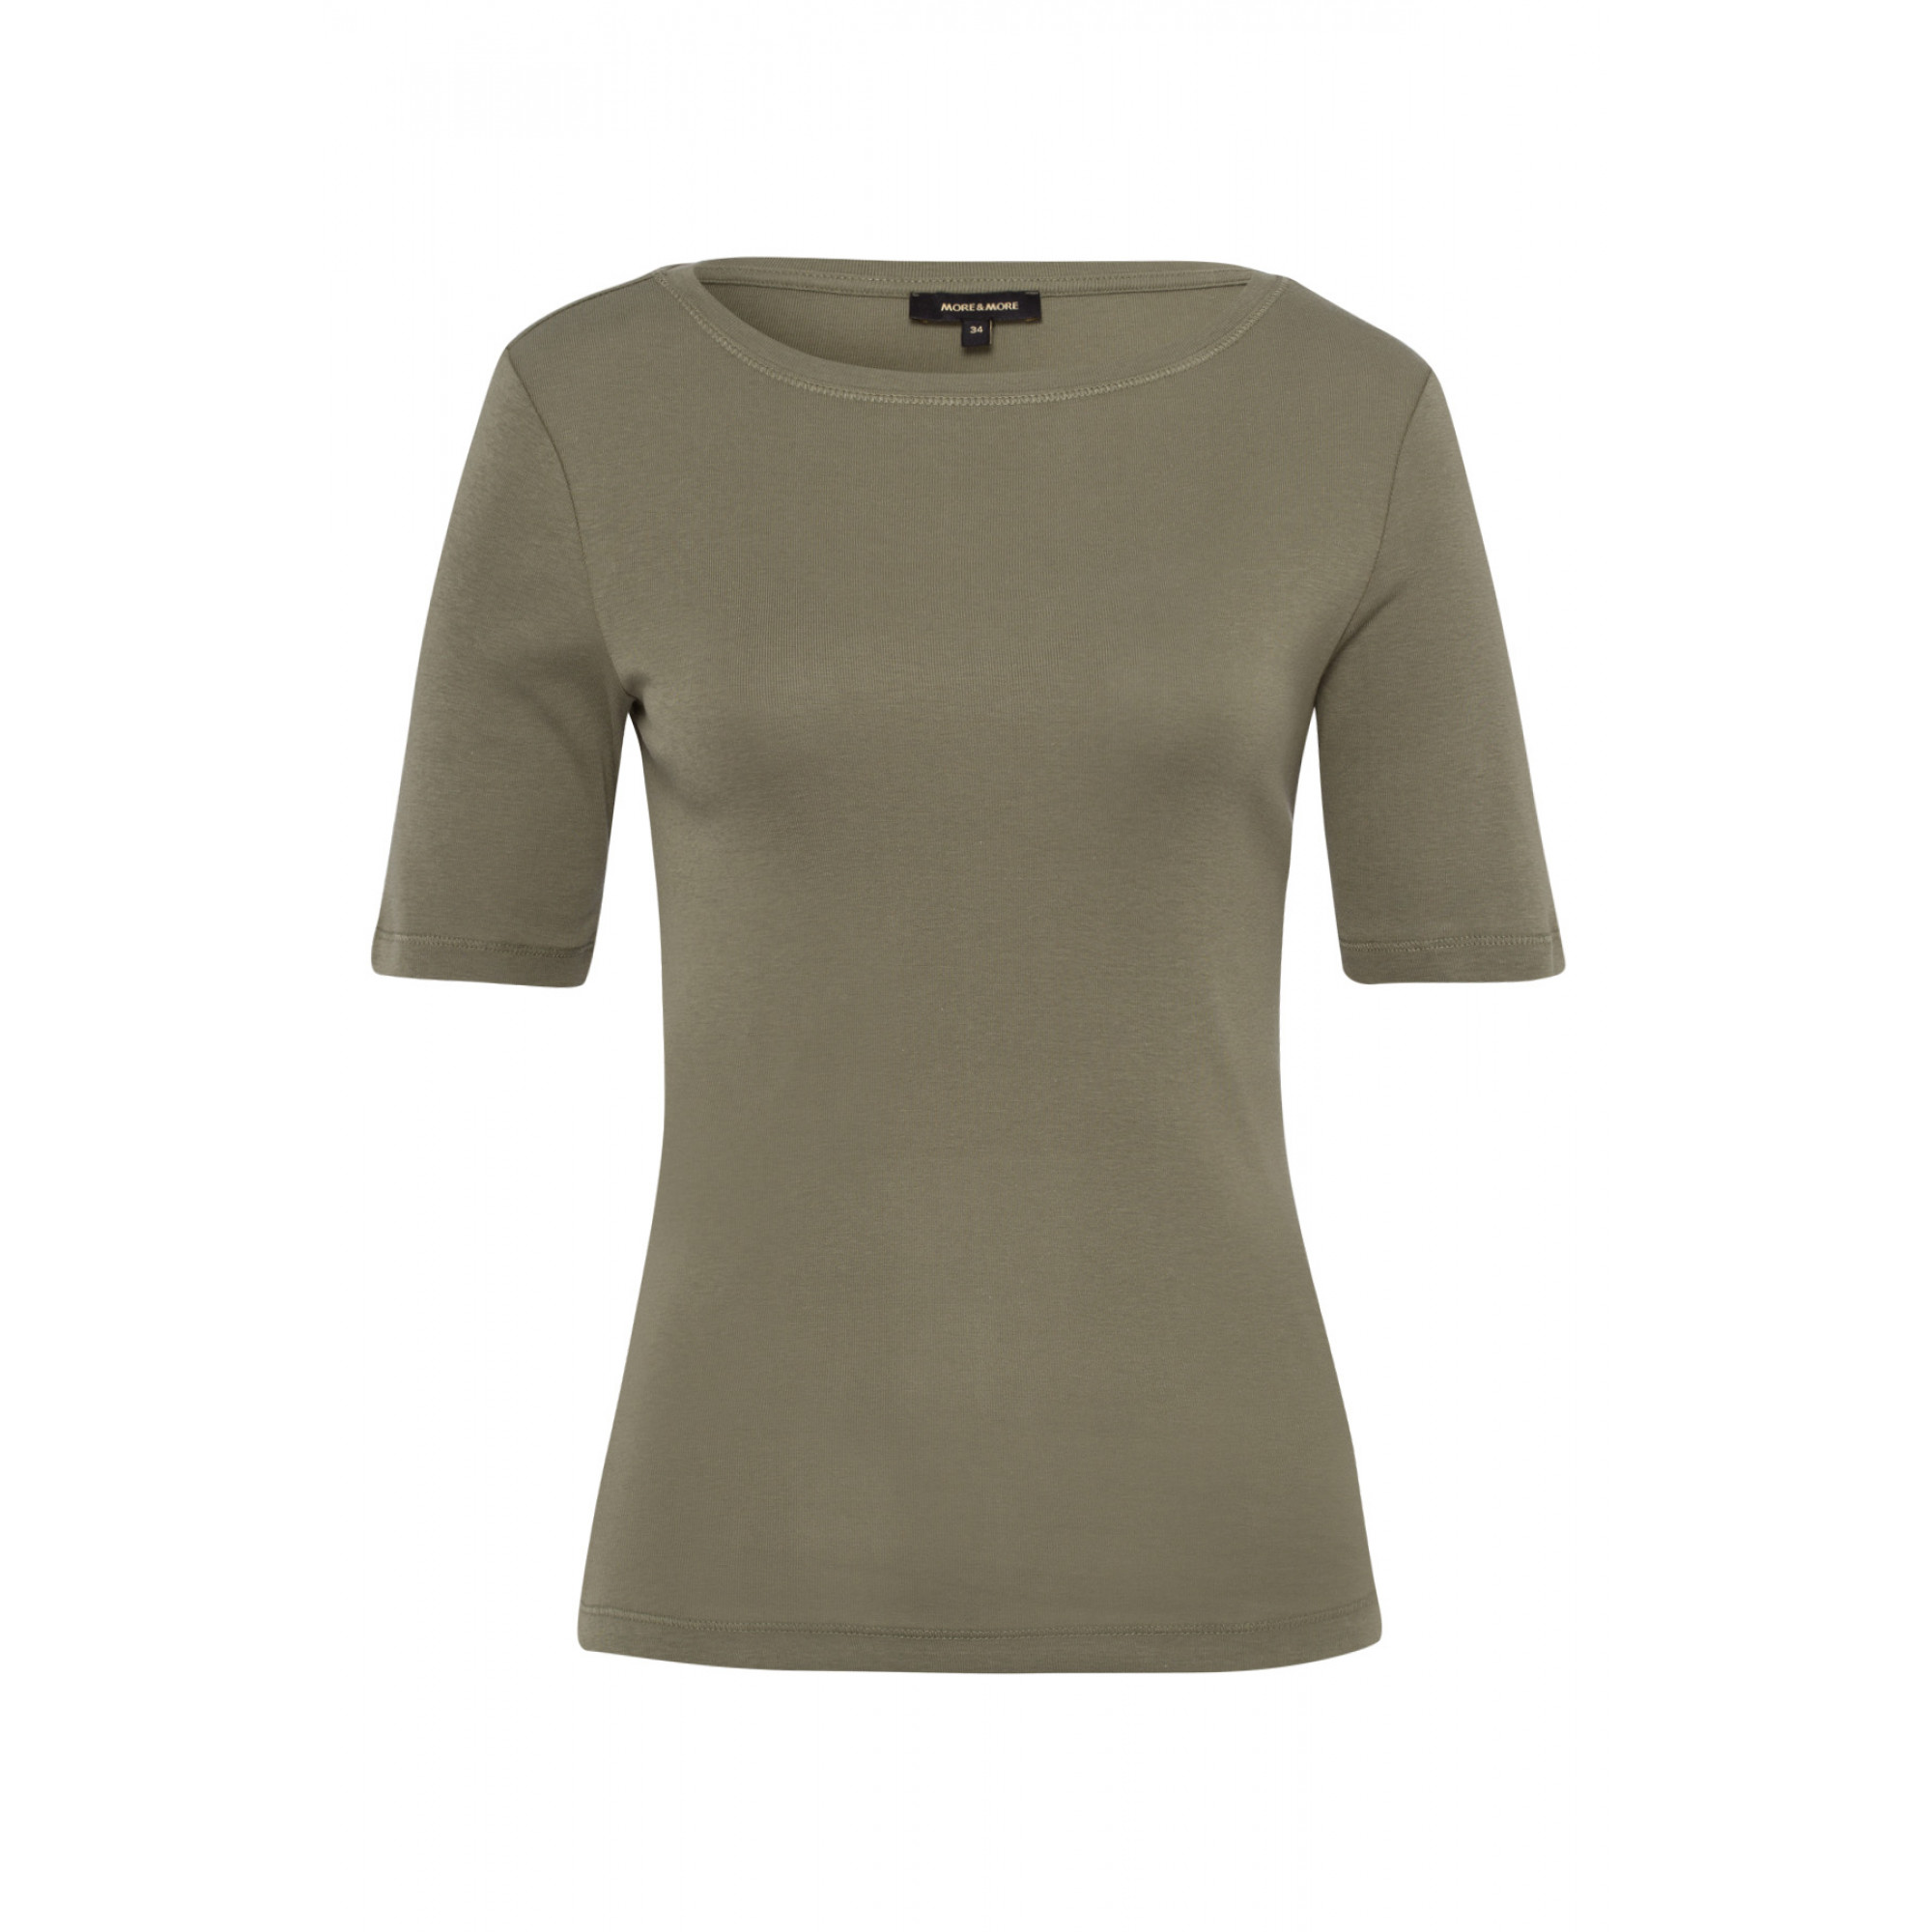 Baumwoll-T-Shirt, new khaki 01950008-0666 1